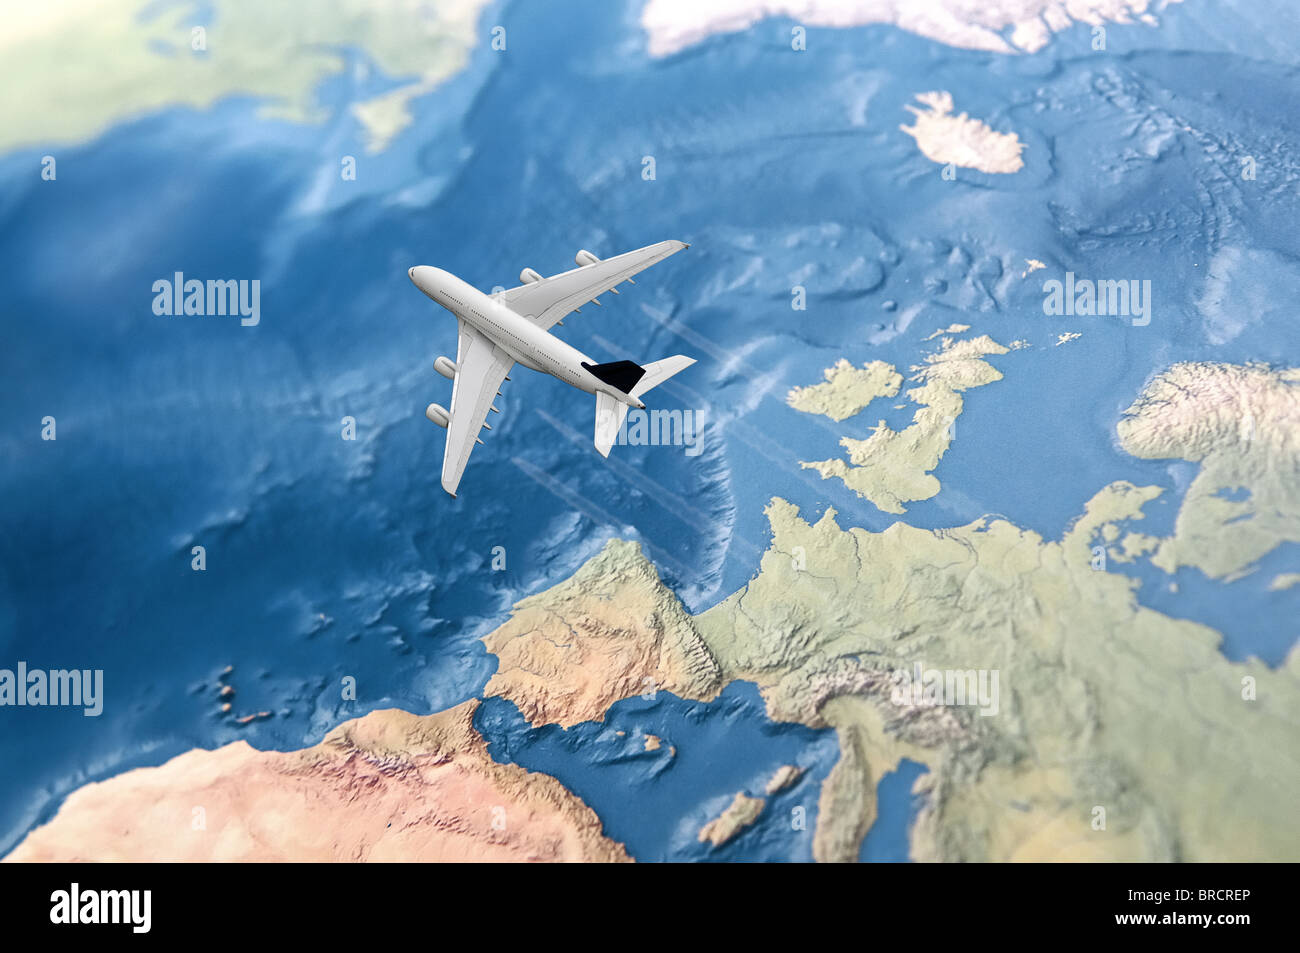 White Civil Airplane over the Atlantic ocean flying from Europe to the USA - Stock Image